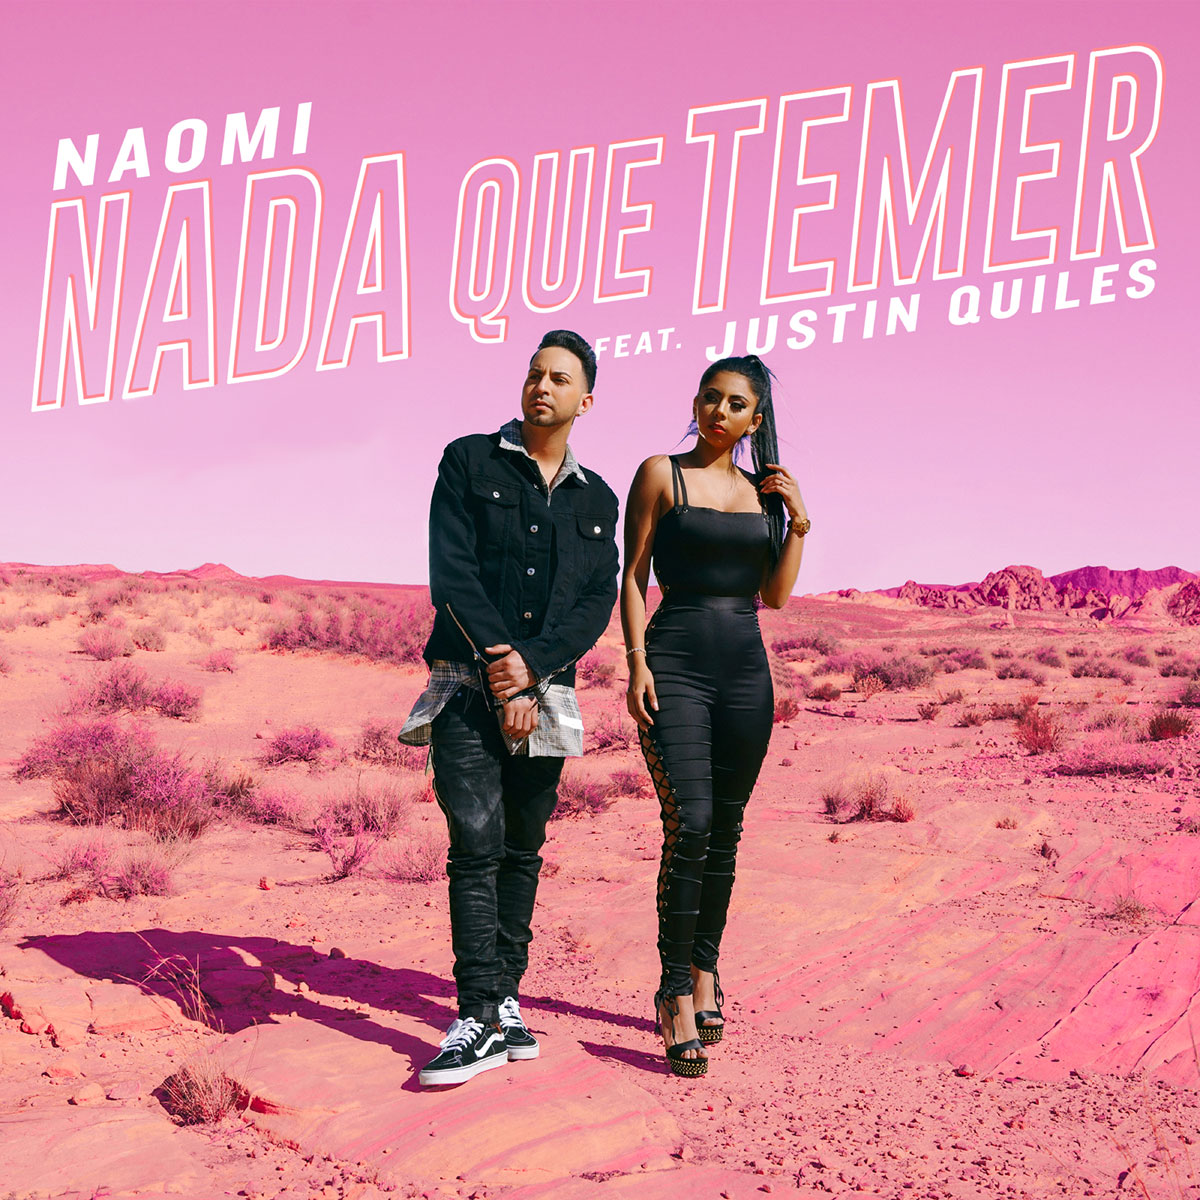 Naomi Ft. Justin Quiles - Nada Que Temer MP3